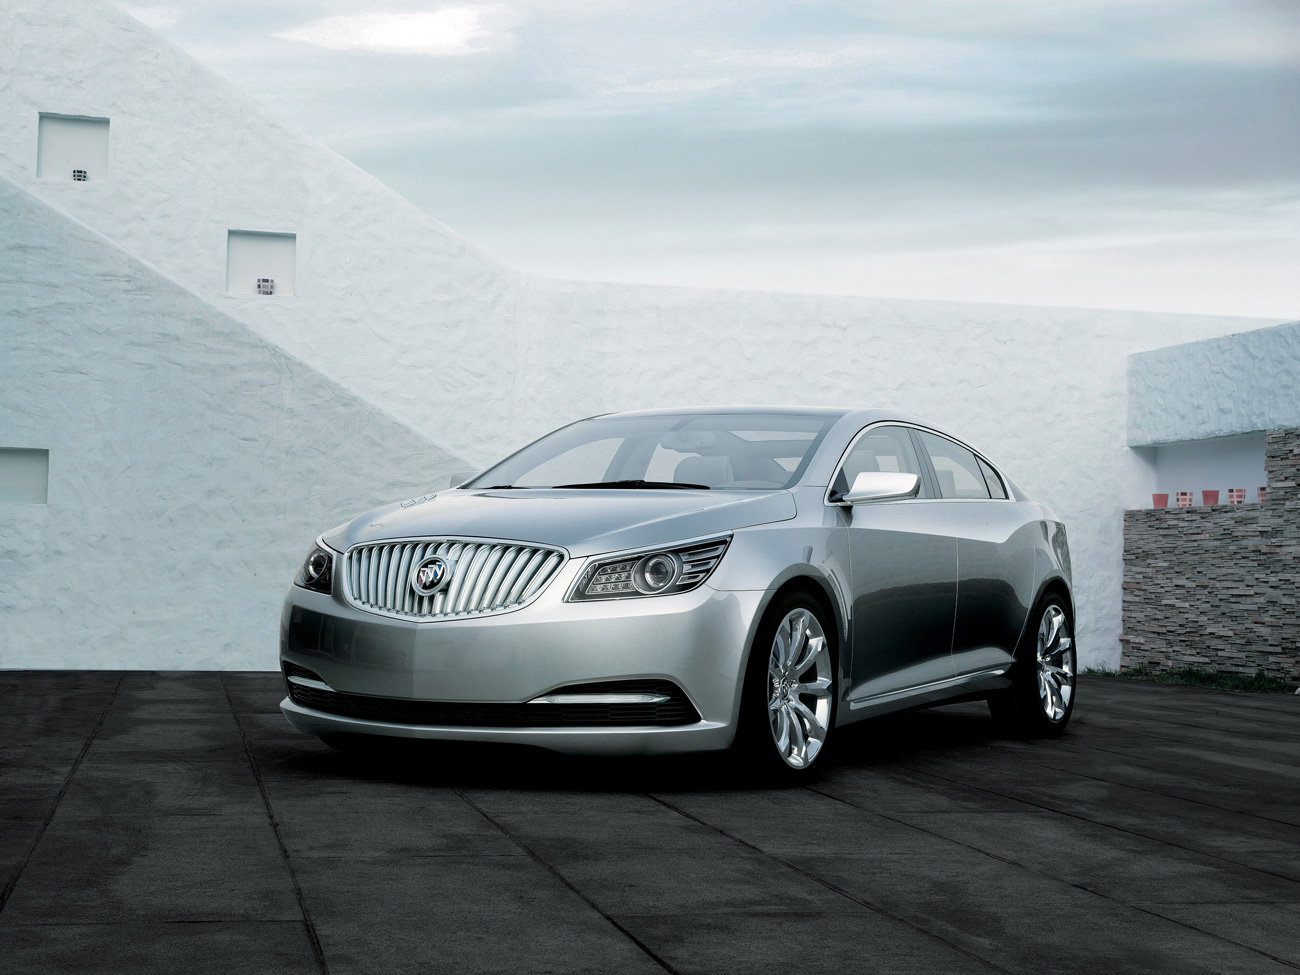 Buick LaCrosse: Global Positioning System (GPS)